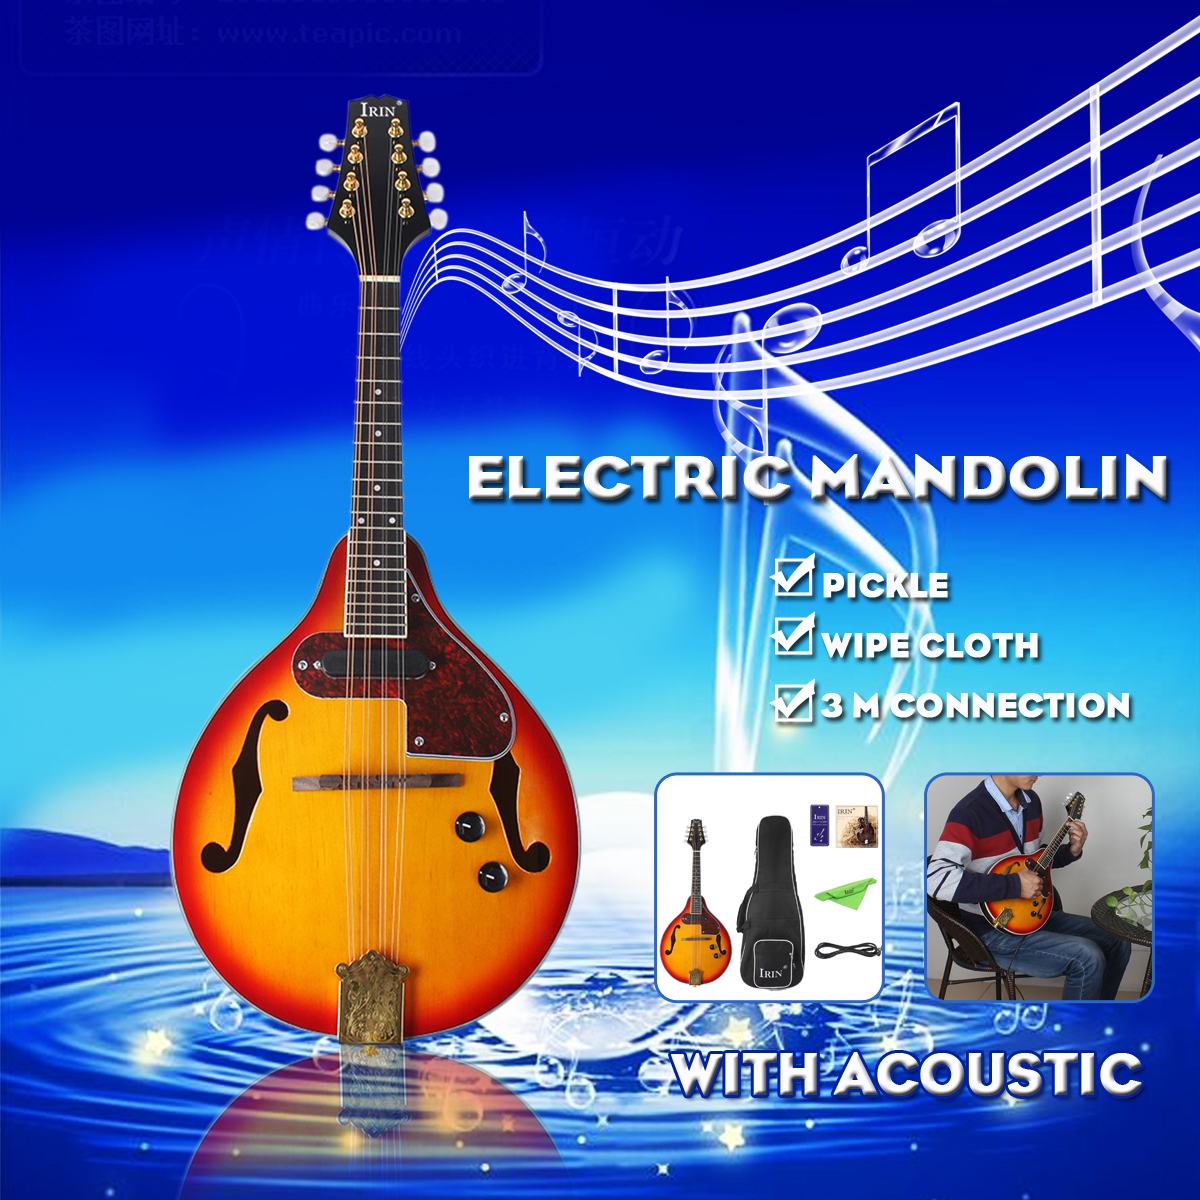 Rosewood 8-String Electric Mandolin  A Style Rosewood Fingerboard Adjustable String Instrument With Cable Strings Picks Bag